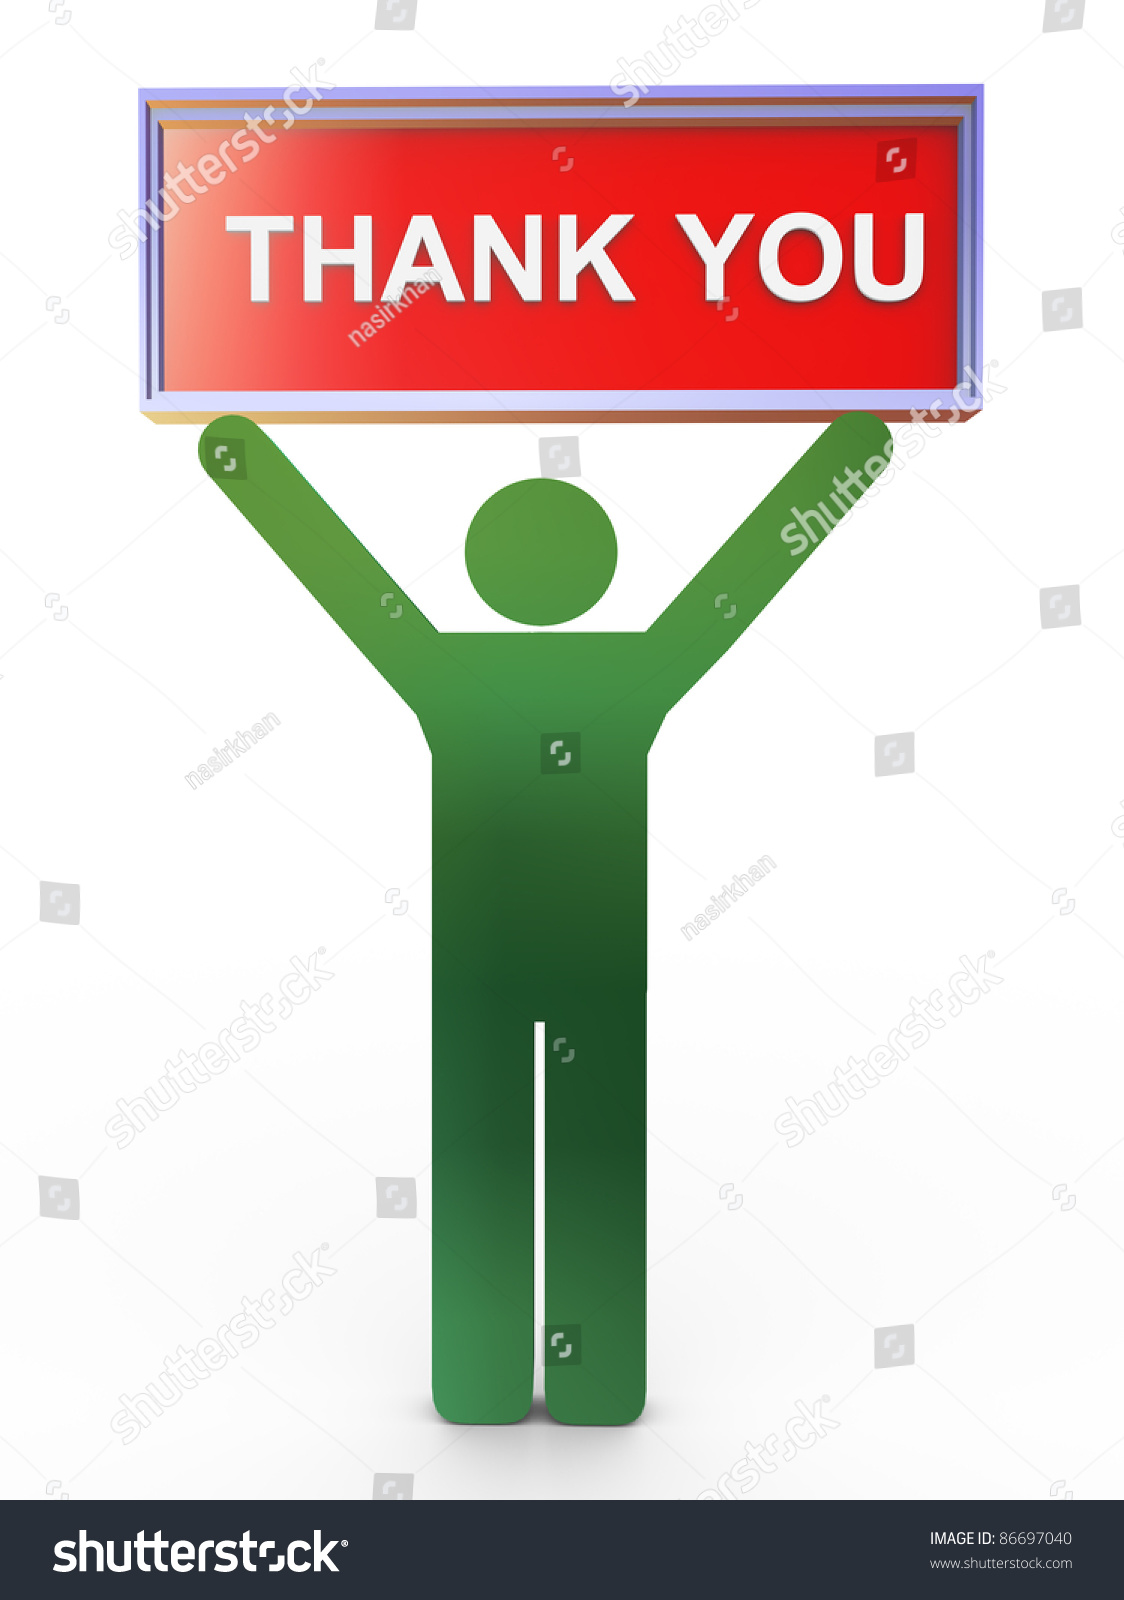 3d Man Holding Object With Text 'Thank You' Stock Photo ...